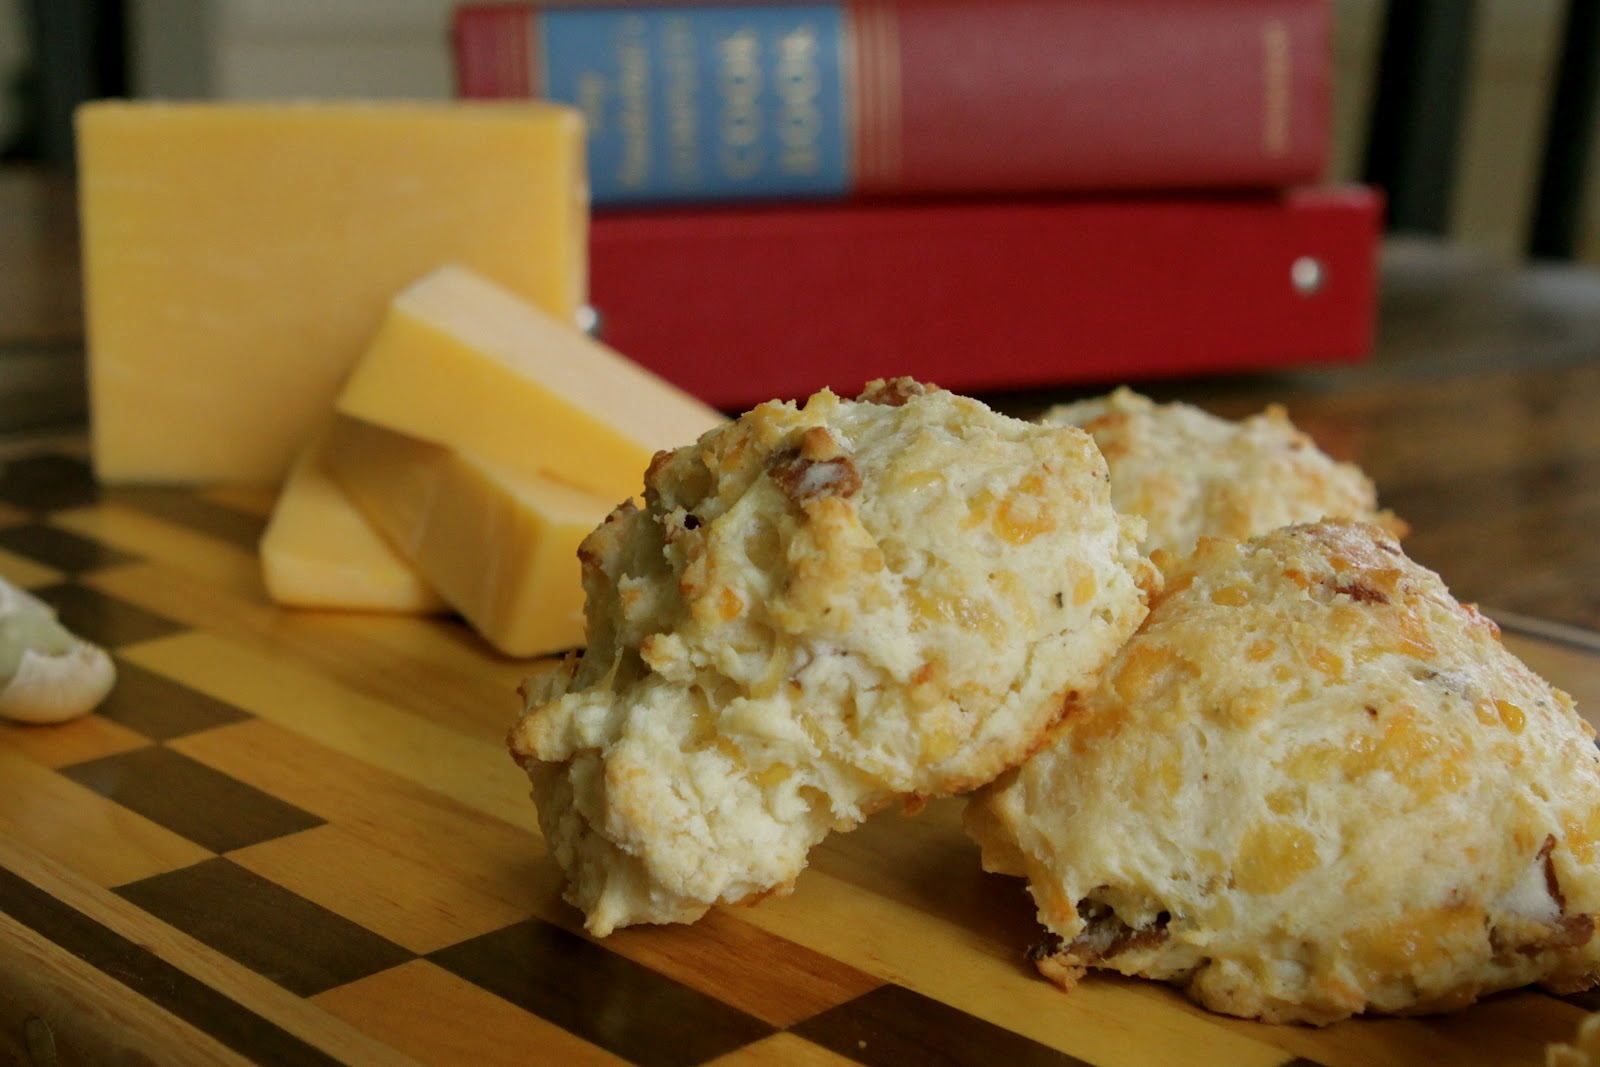 Cheddar & Bacon Biscuits with Garlic Butter Topping